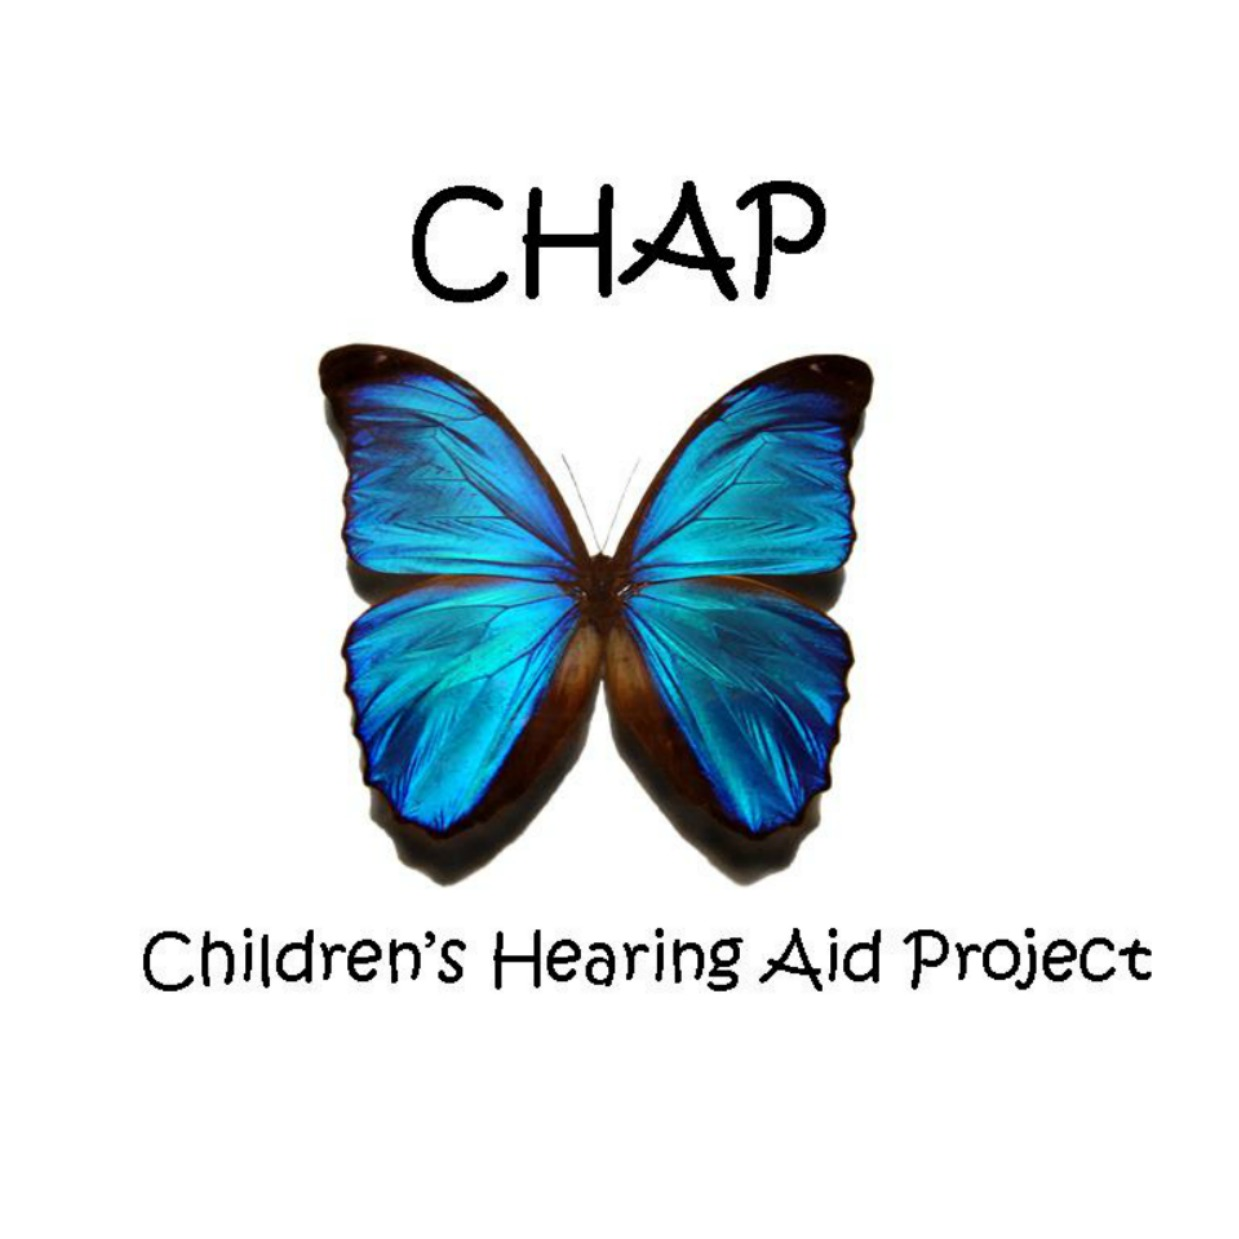 Children's Hearing Aid Project